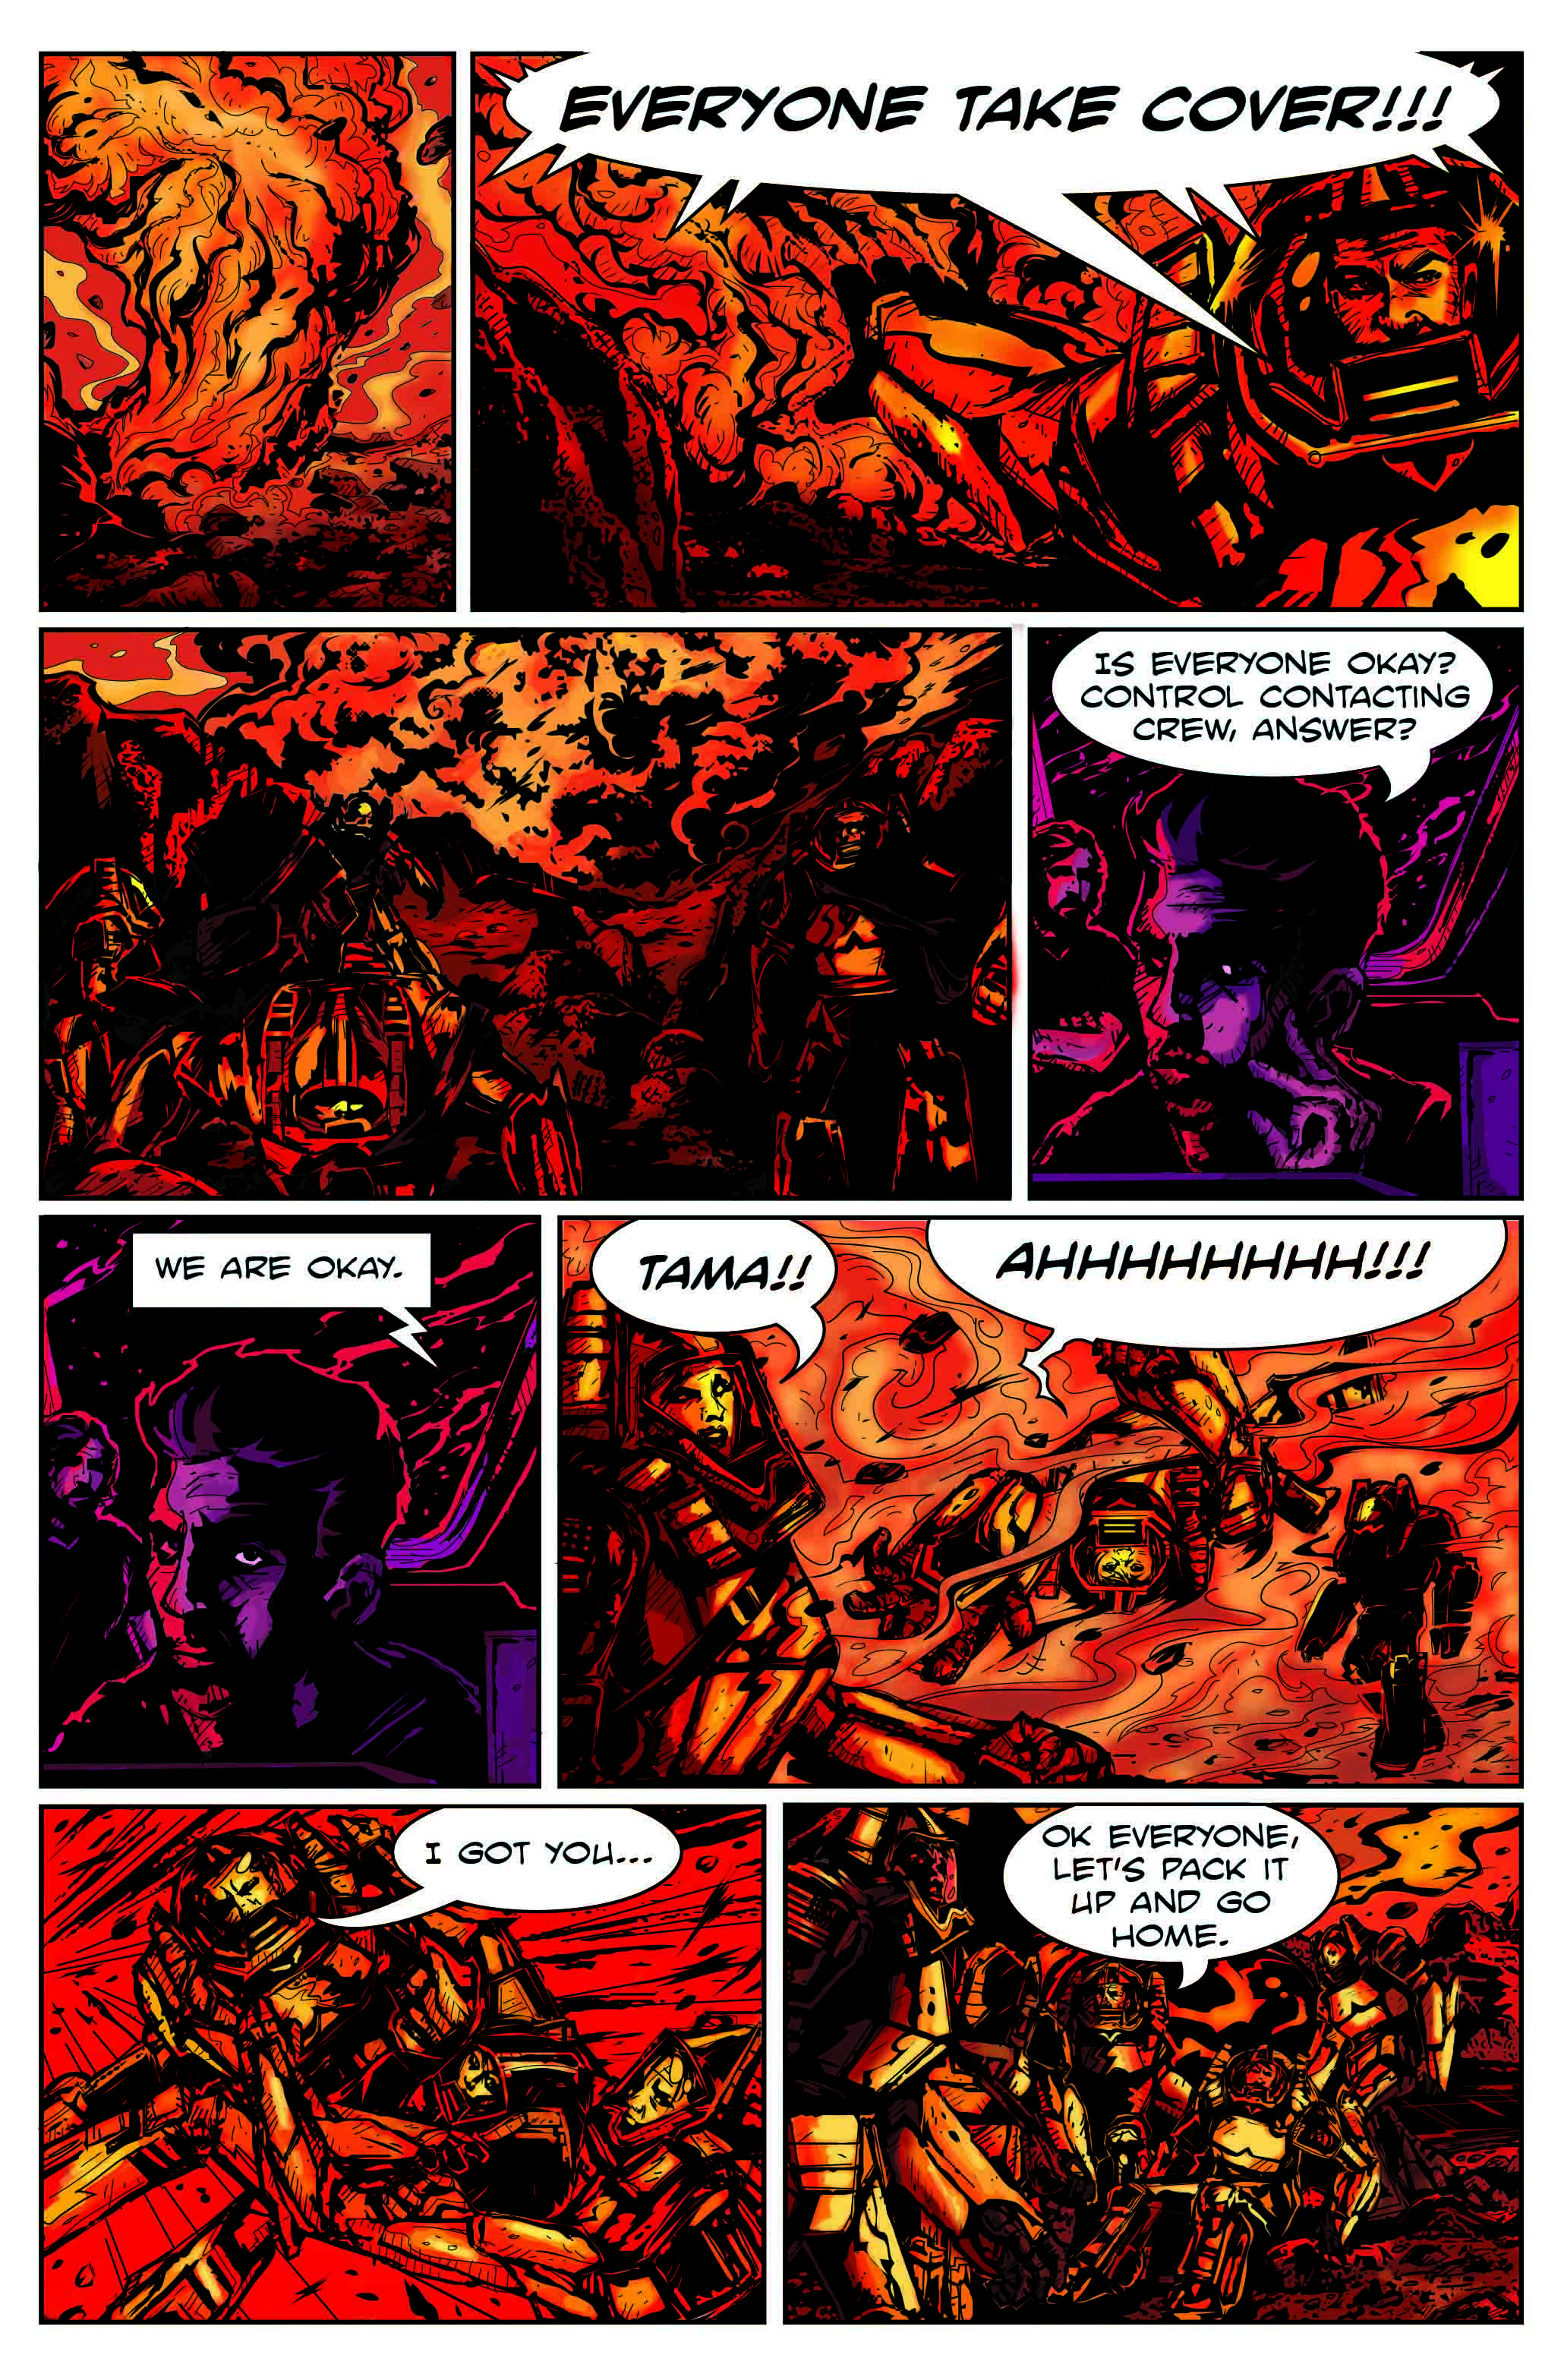 codenametalamh_page22-color